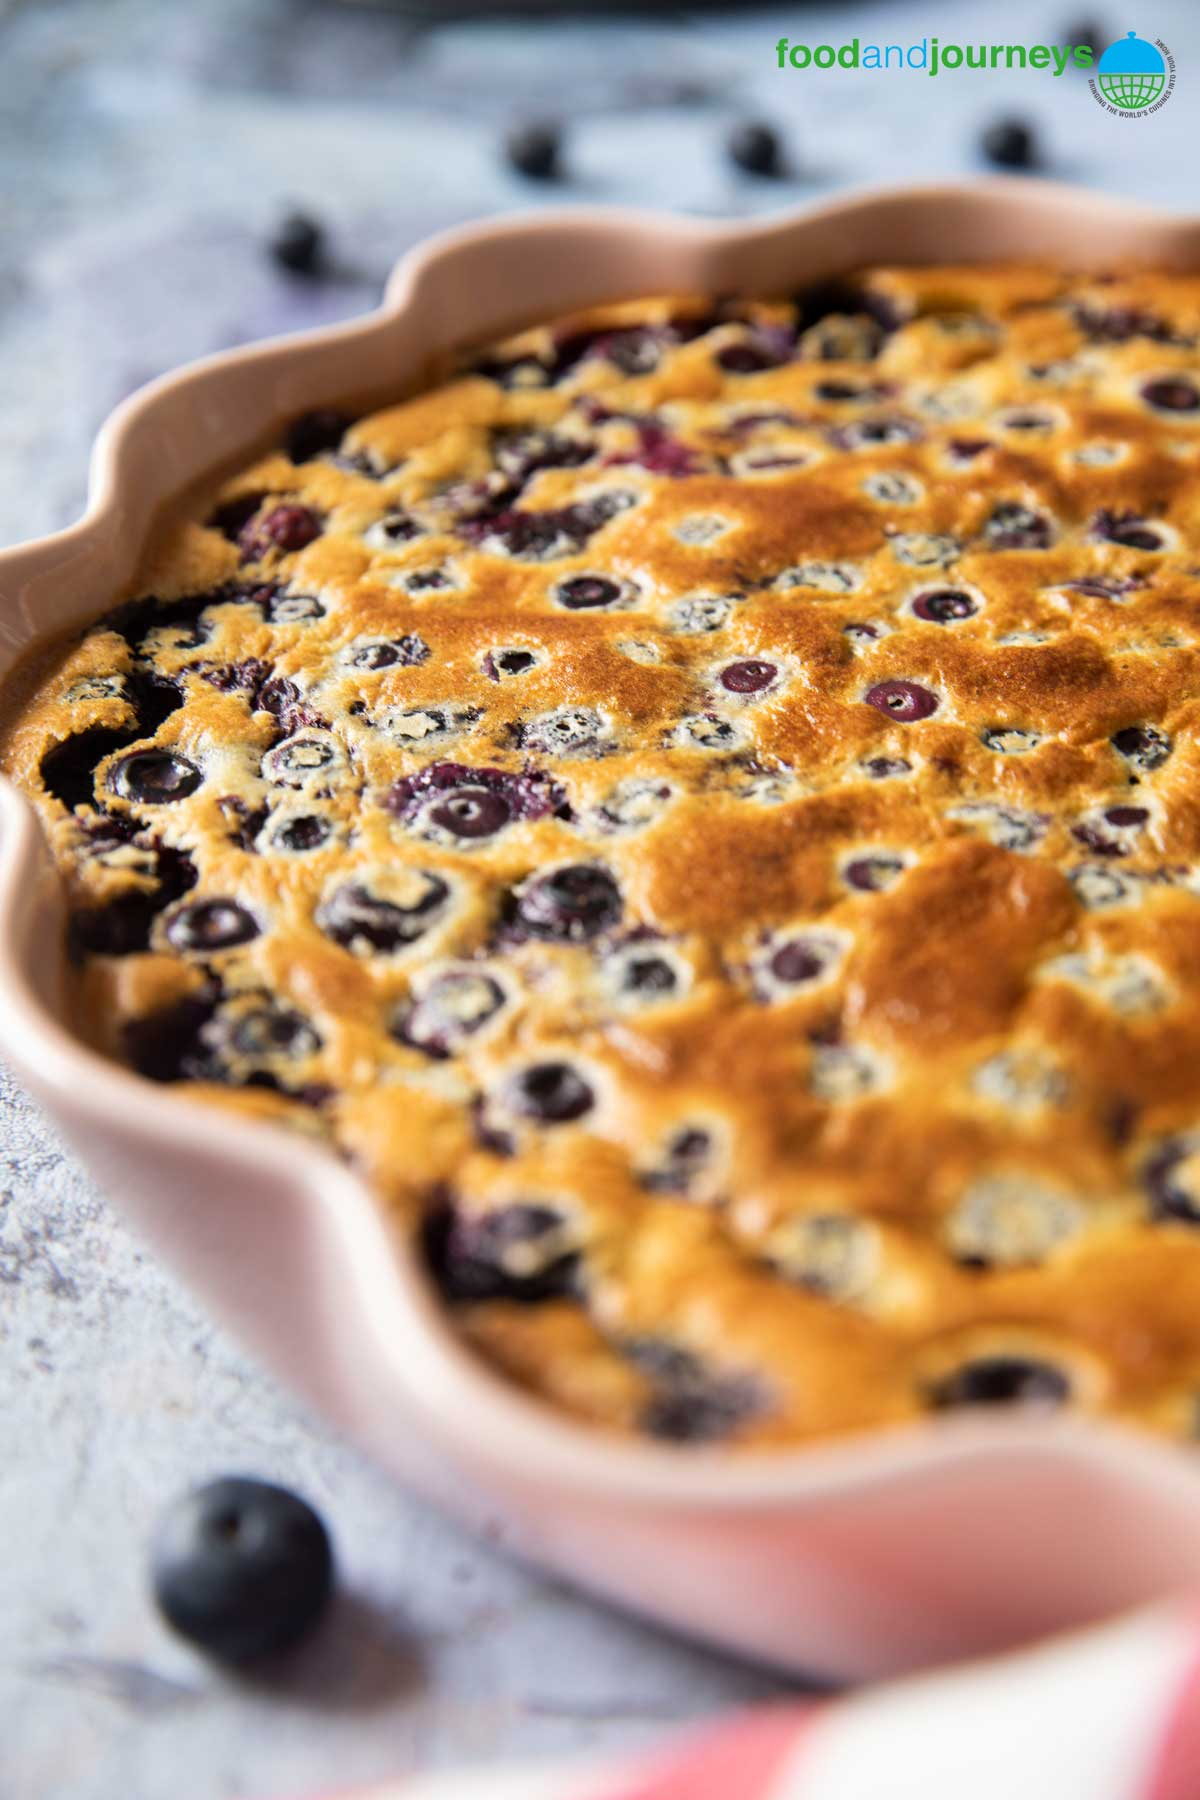 A closer shot of the top of a Basic Clafoutis, highlighting the blueberries in there and the golden top of the custard.